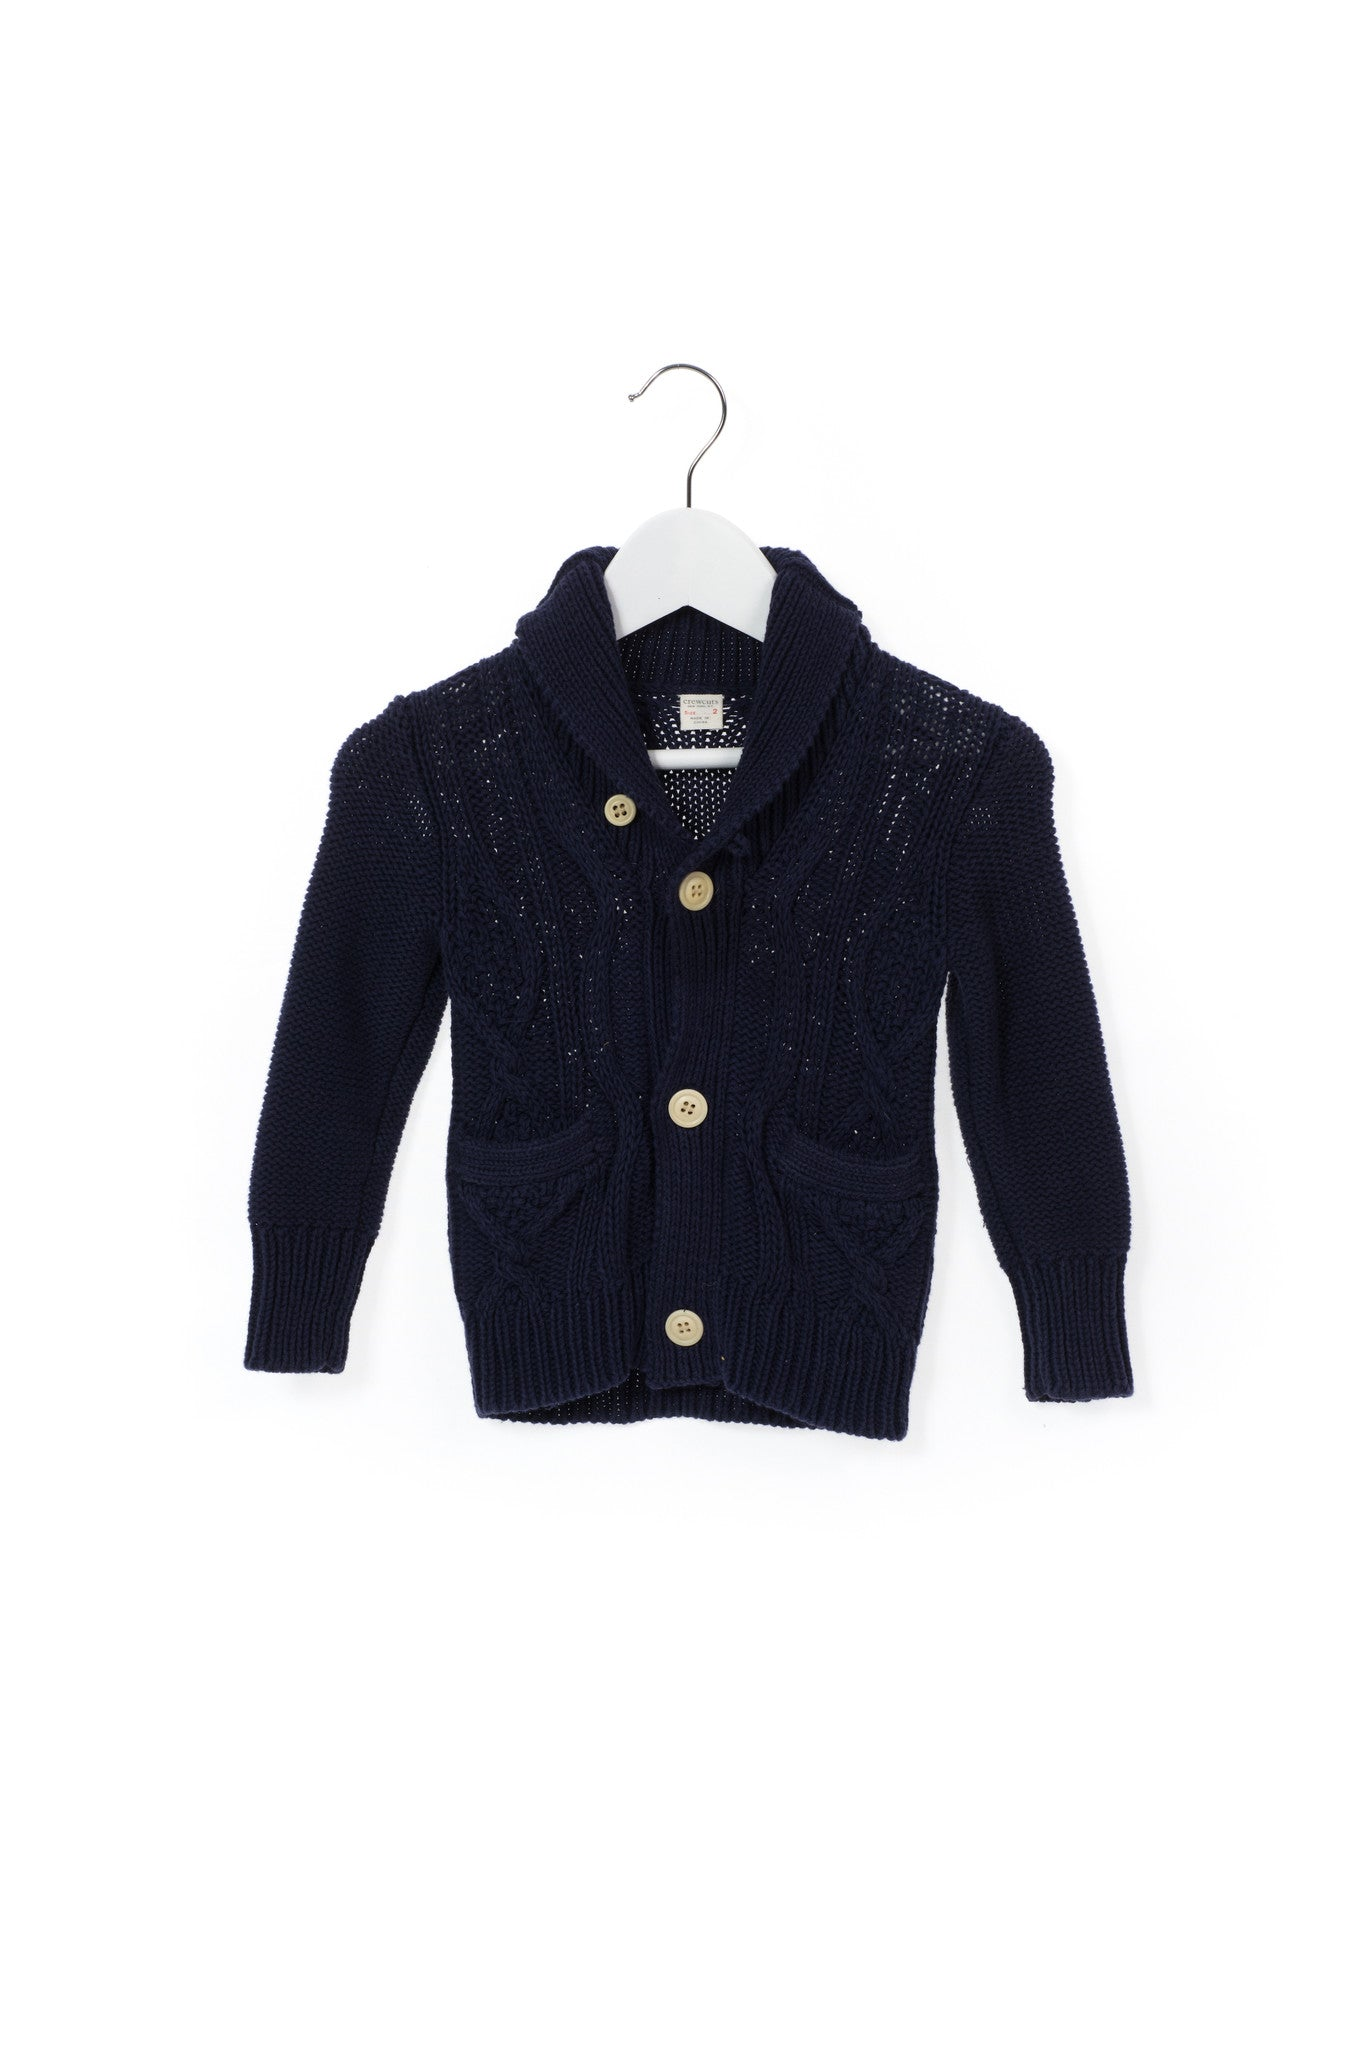 Cardigan 2T, Crewcuts at Retykle - Online Baby & Kids Clothing Up to 90% Off